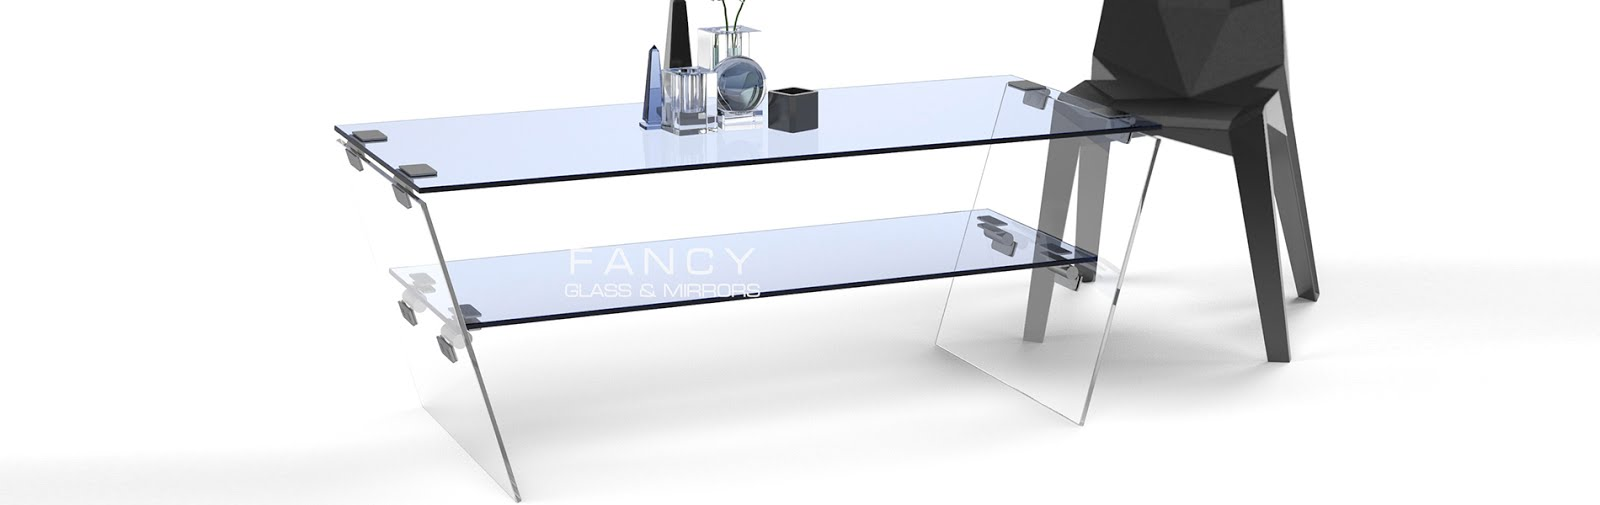 Rectangular coffee table with v shaped base